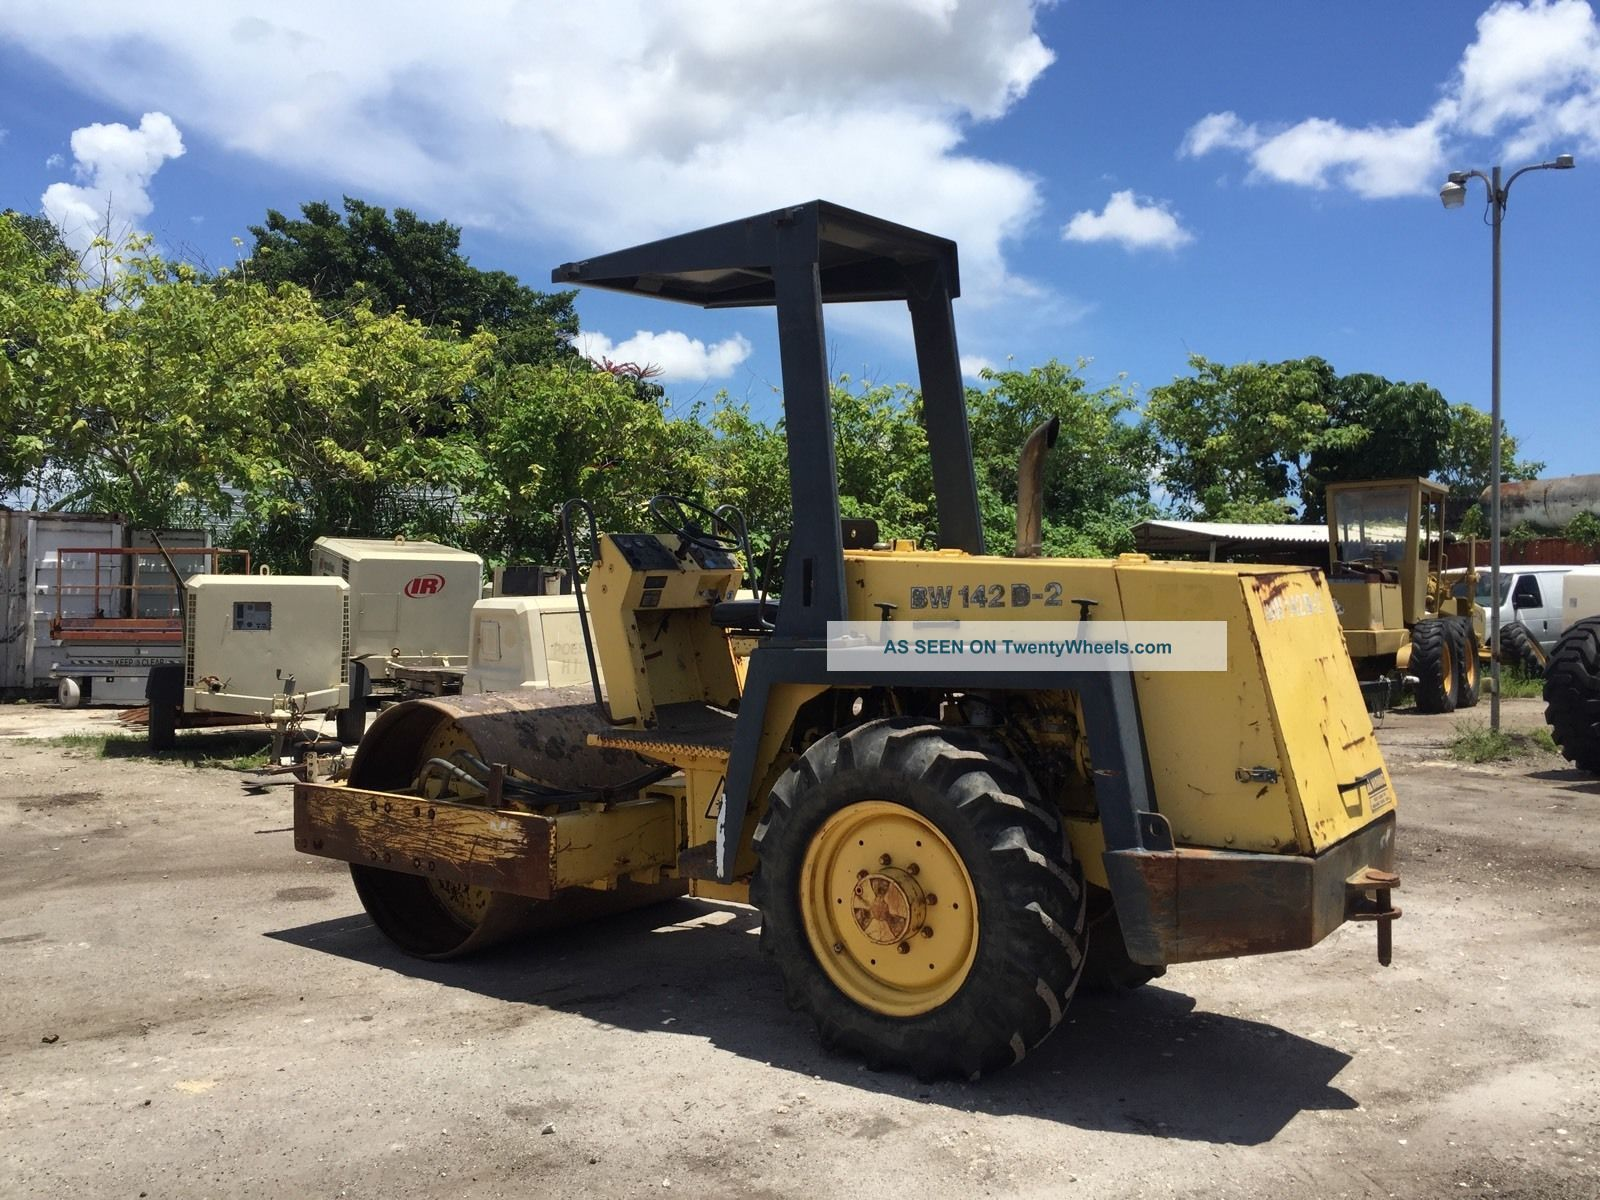 2002 Bomag Bw142d Single Drum Roller Compactors & Rollers - Riding photo